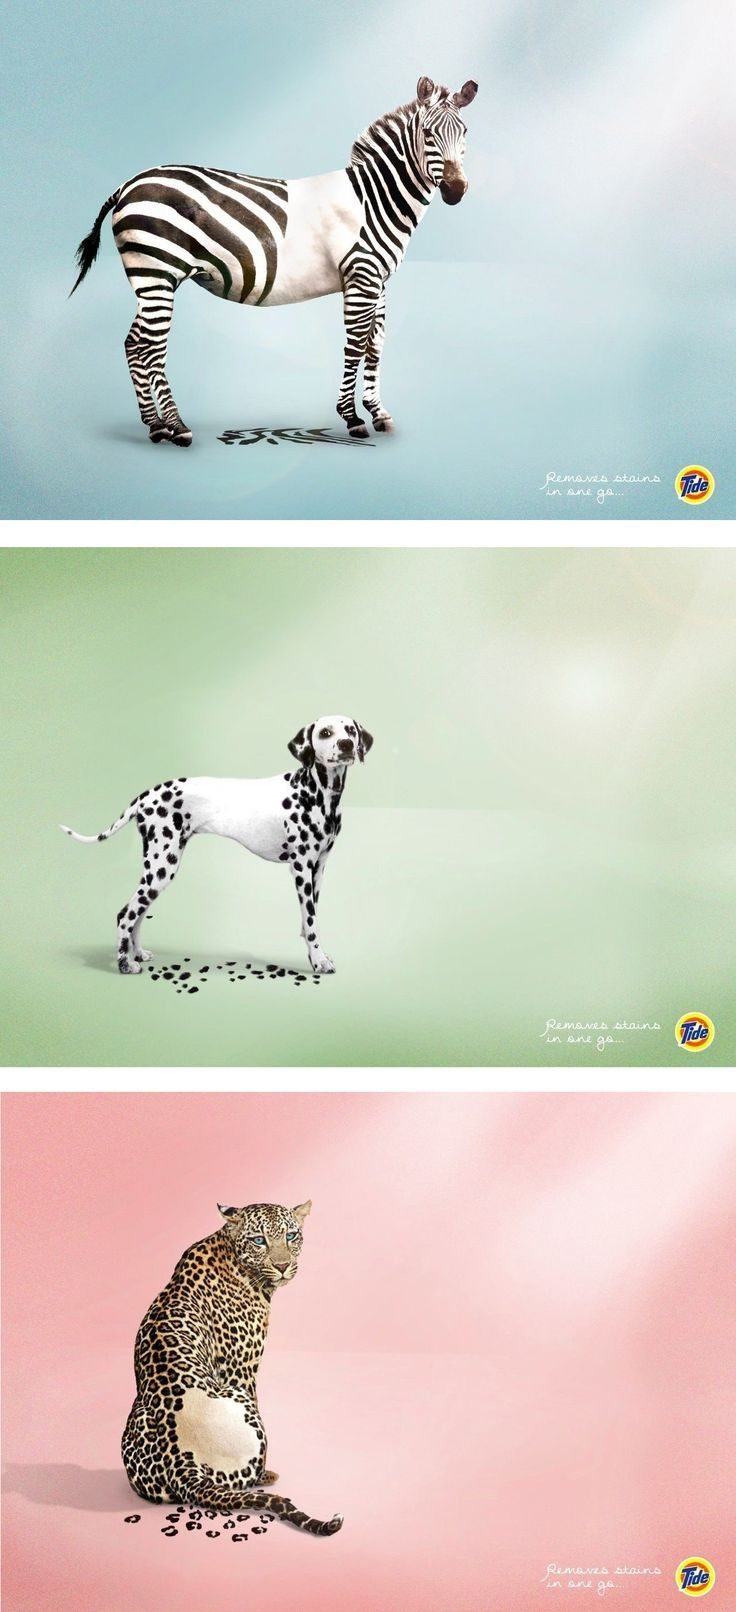 best images about ads oplus posters advertising they took the photo of the animal and removed their spots photo manipulation i really like how they then took the spots and places them on the floor